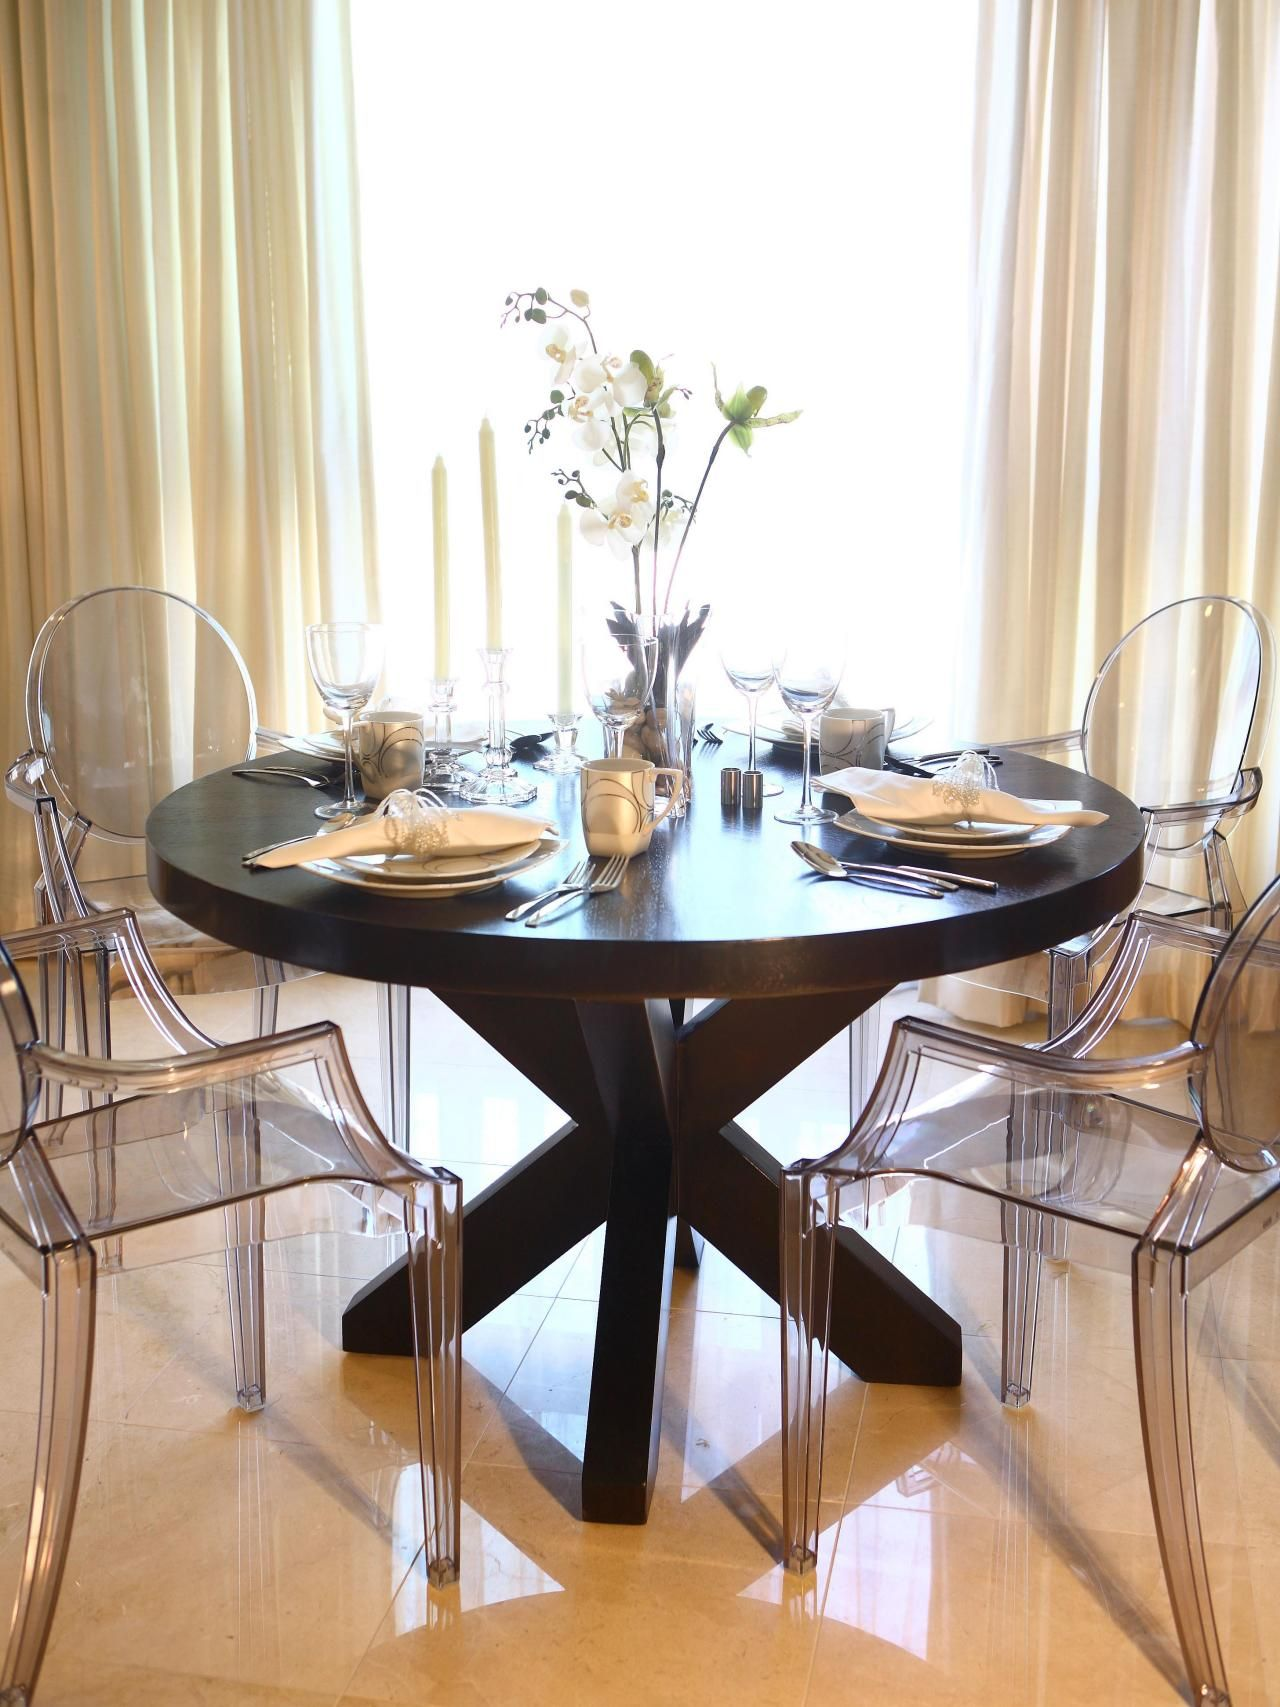 Photos | HGTV. Ghost Chairs DiningRound Wood Dining TableKitchen ...